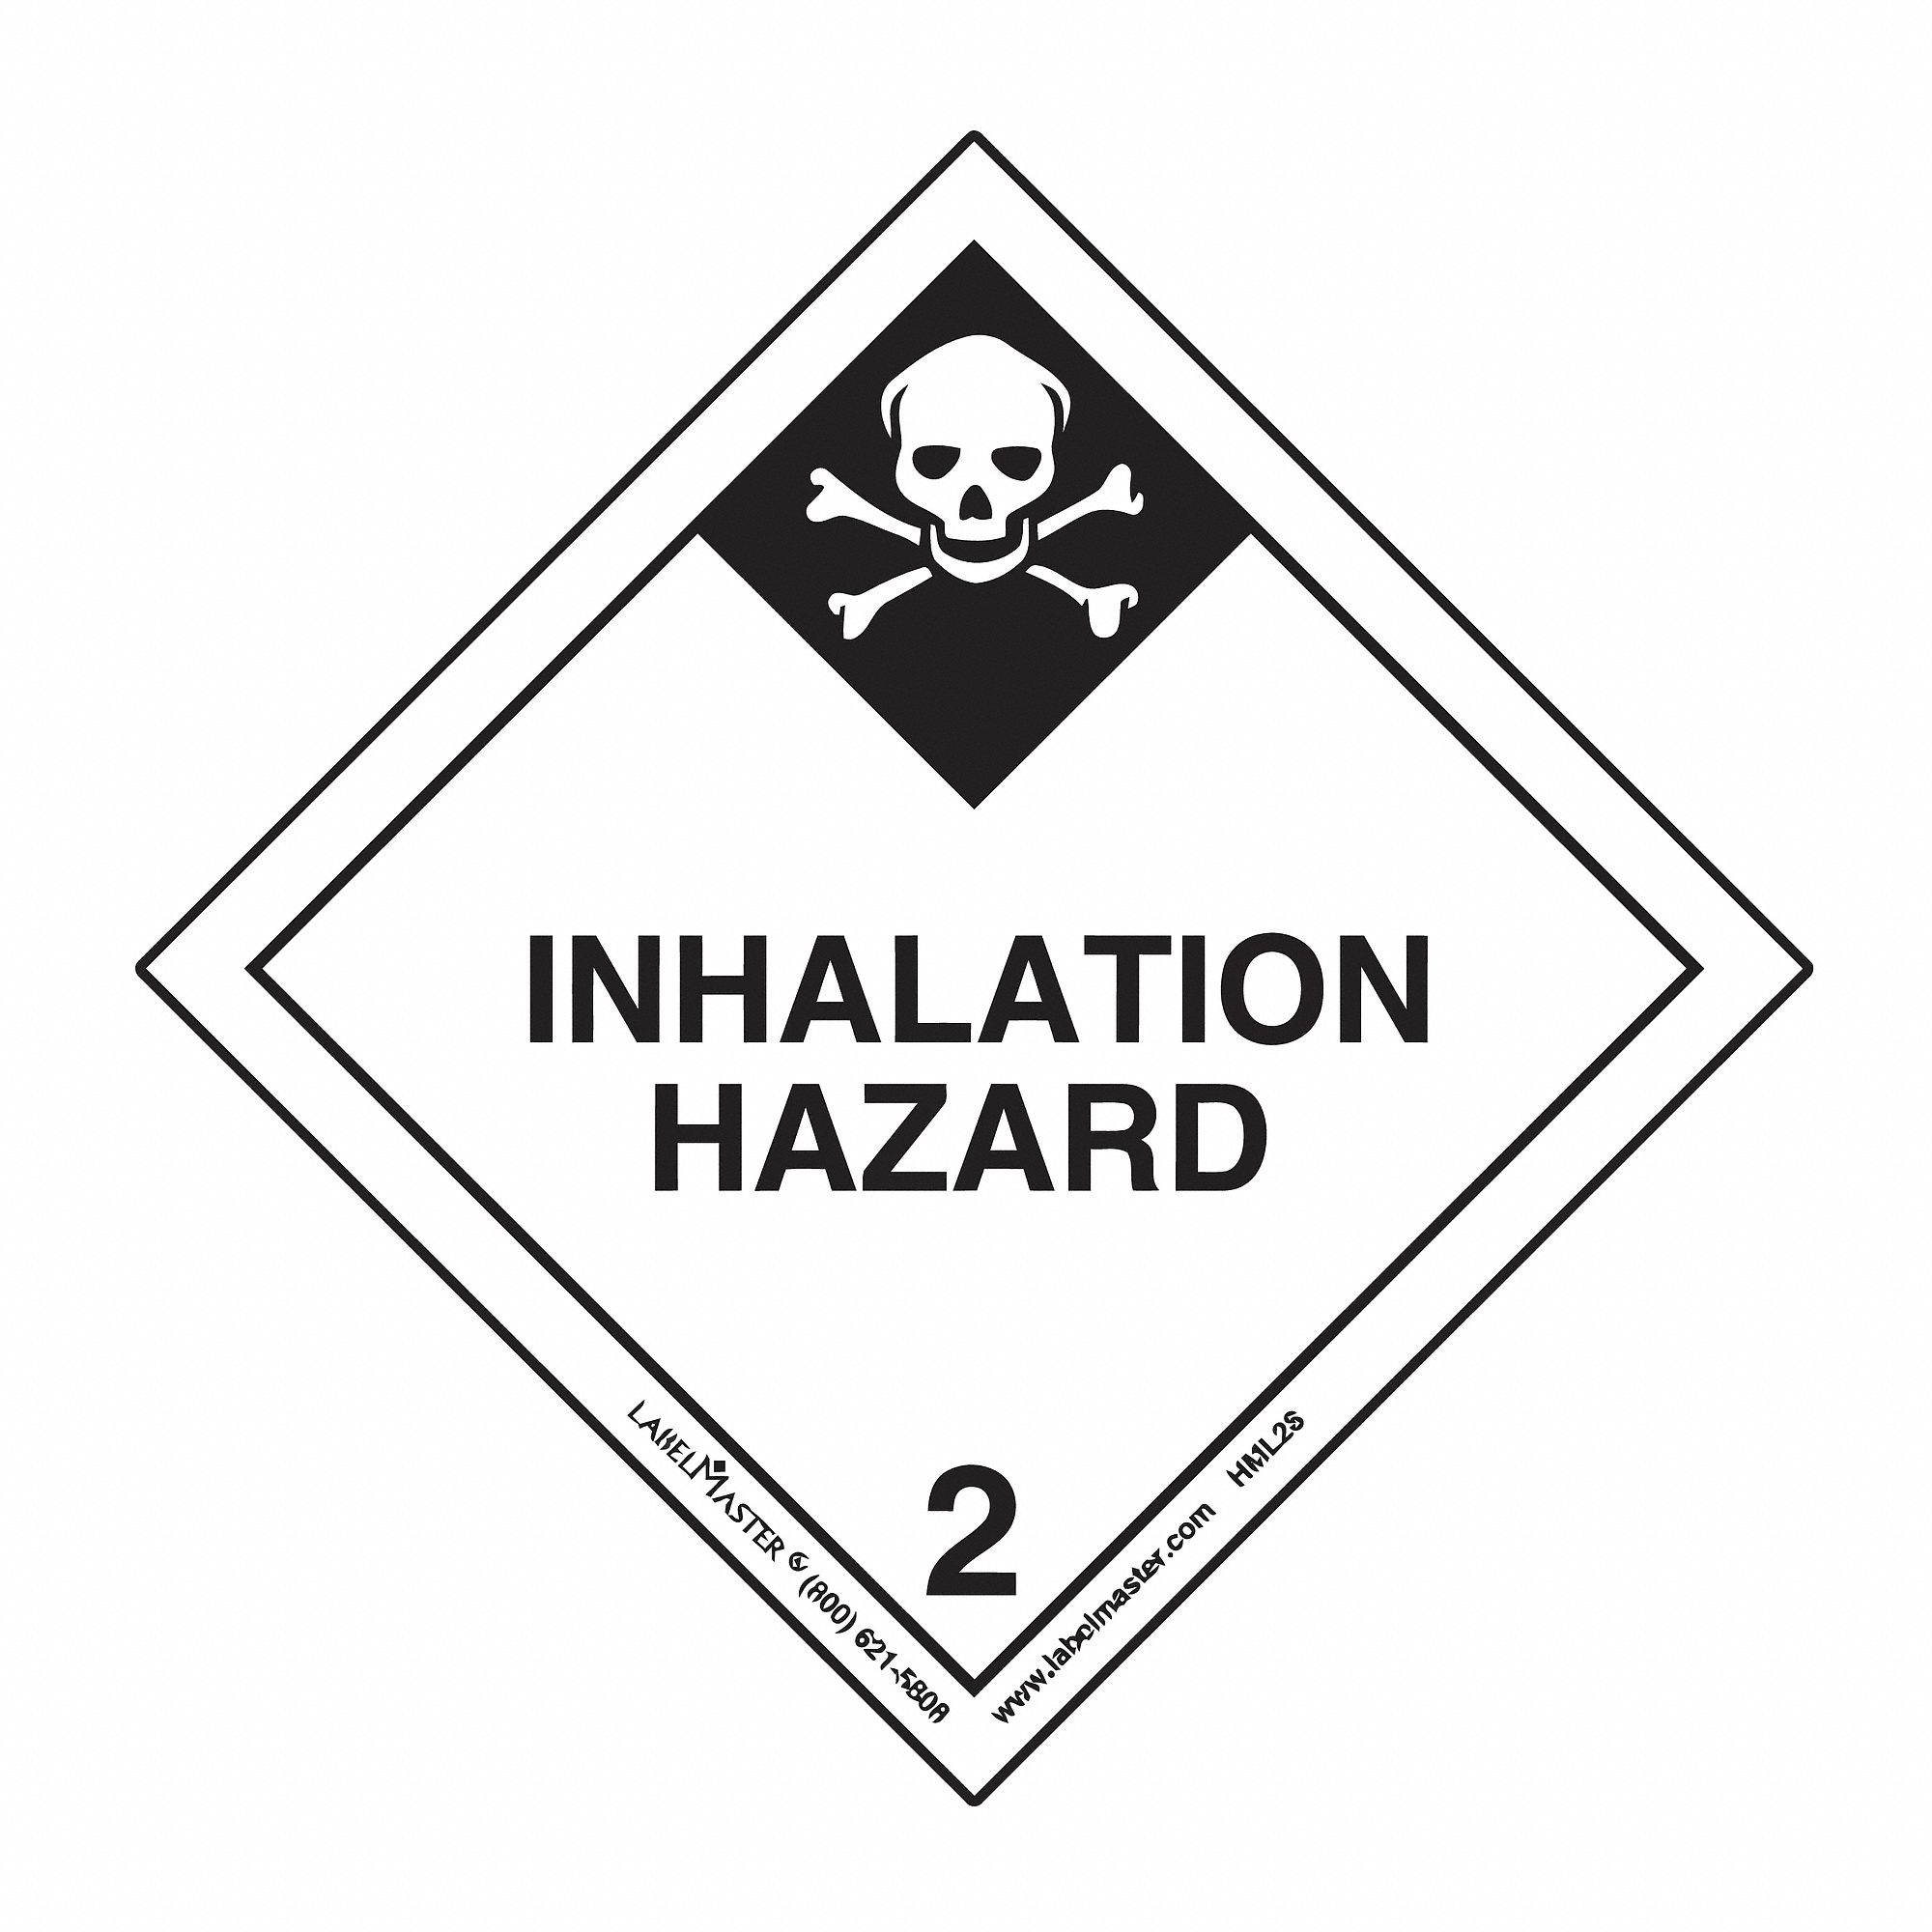 49 cfr 172 400 icao 5 3 imo 5 2 vehicle placards and placard NFPA Label for Diesel Fuel 100mm x 100mm class 2 polypropylene inhalation hazard label white black